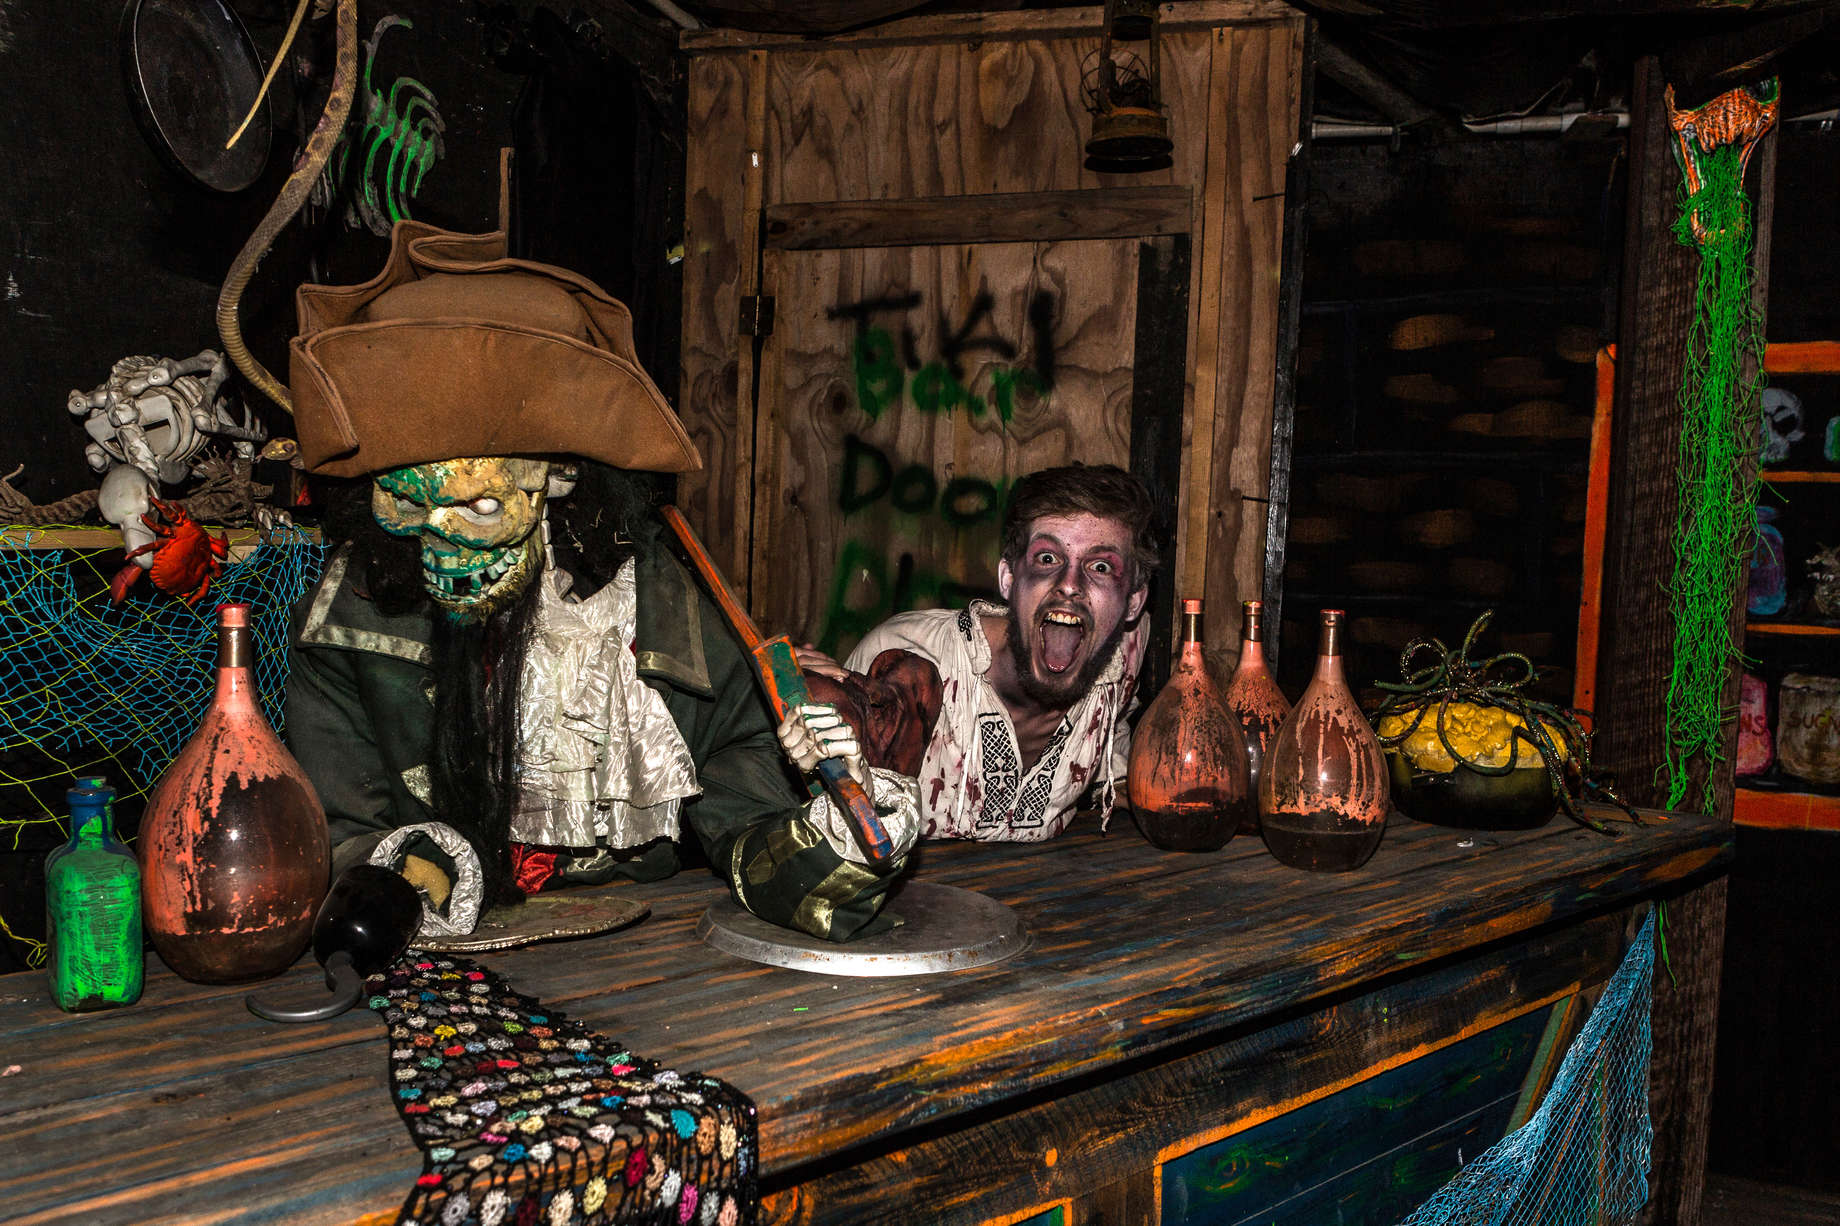 Best Haunted Houses in Dallas: Where to Get Scared in DFW